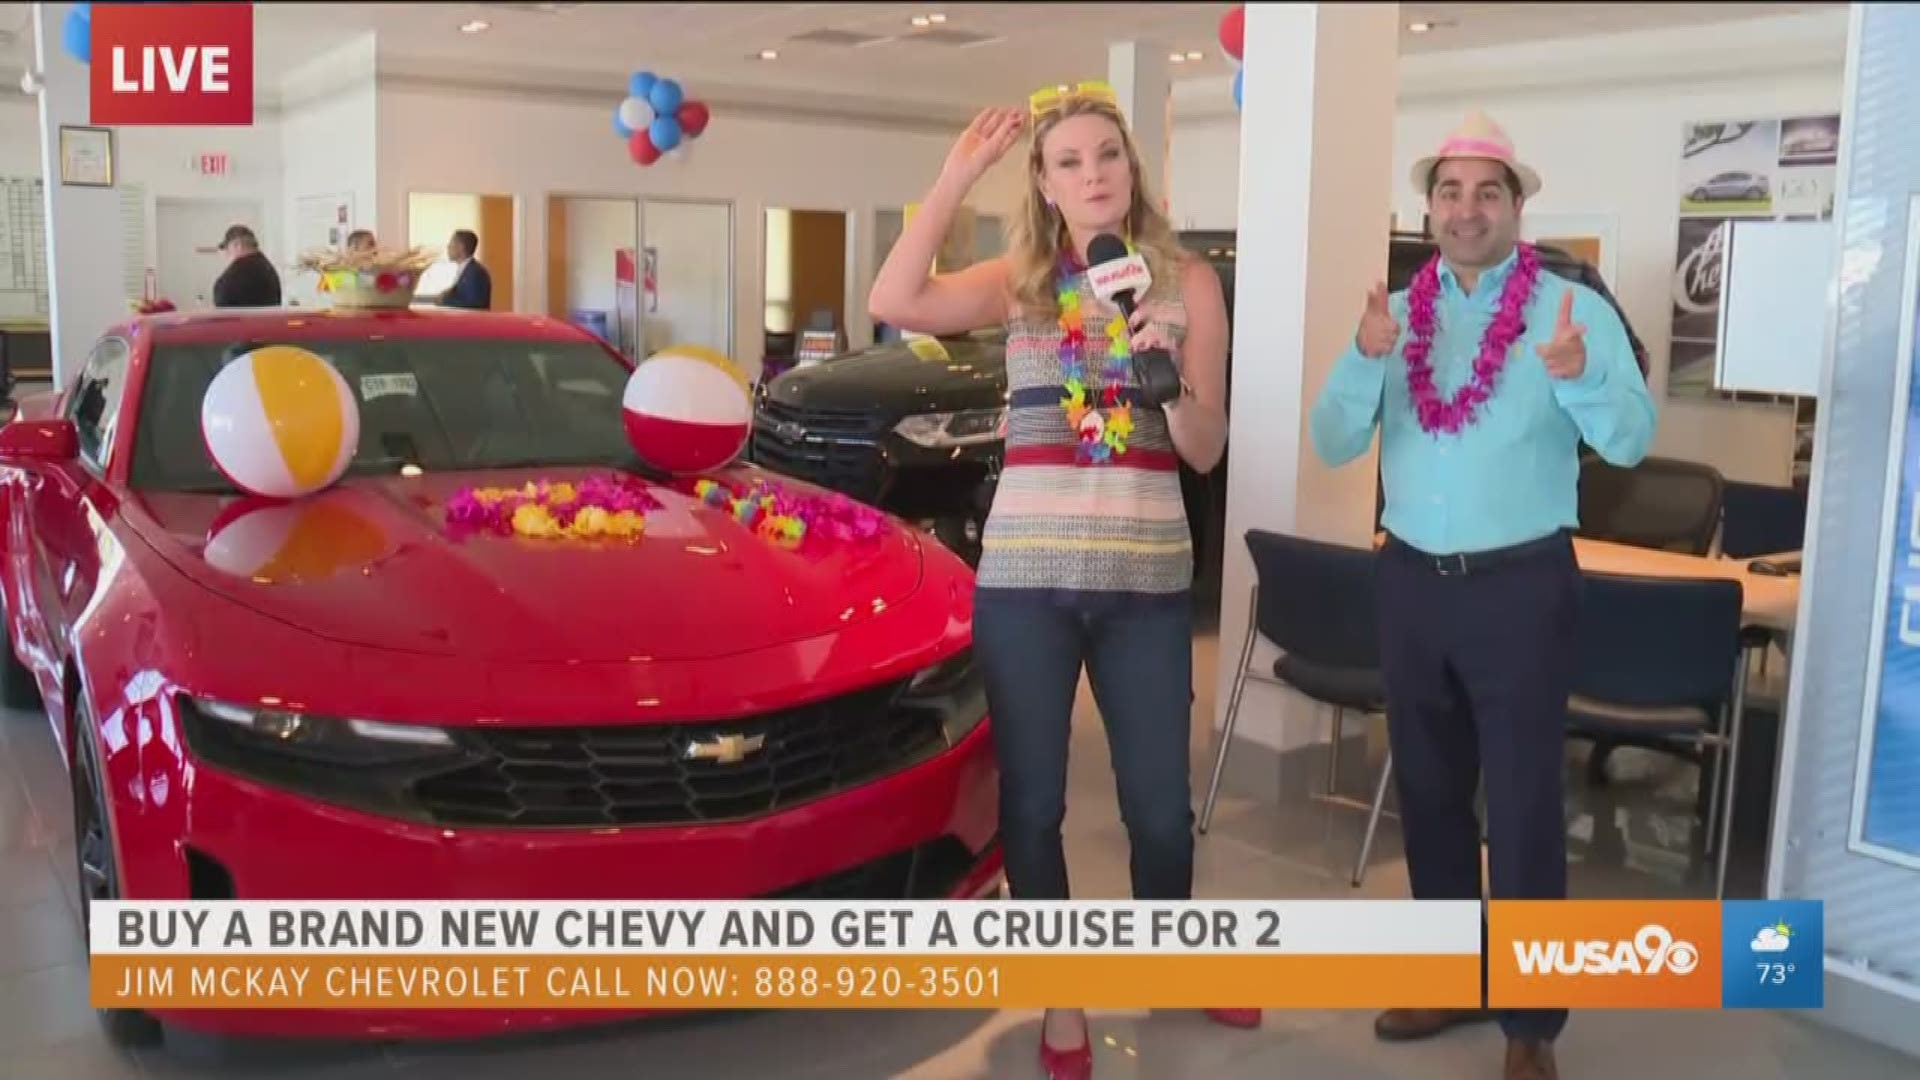 You Can T Beat Jim Mckay Chevrolet S Credit Amnesty Program And Their Memorial Day Weekend Sale Wusa9 Com